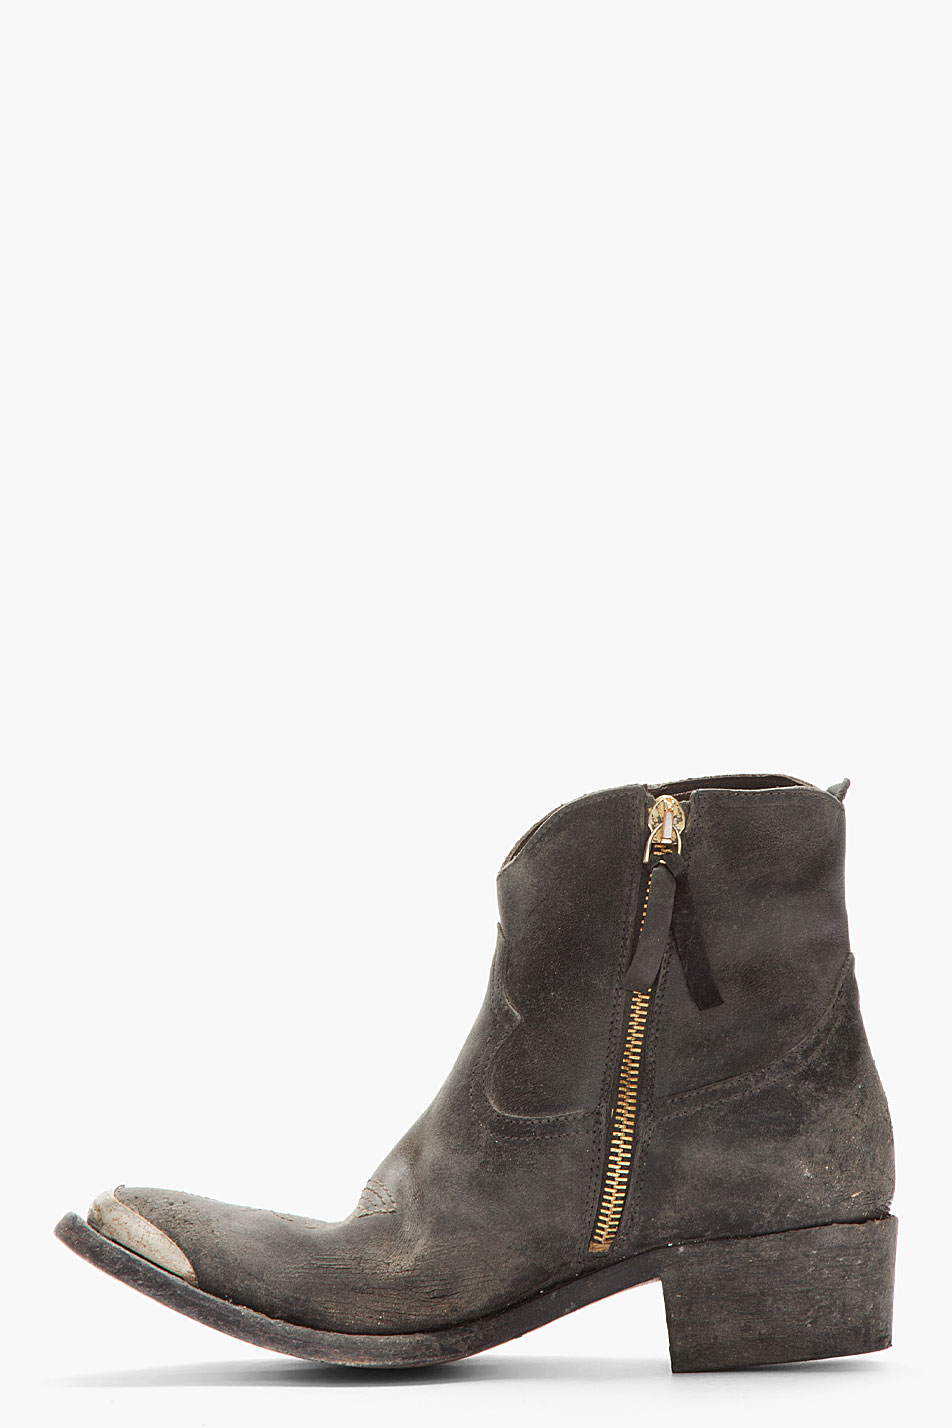 Golden Goose Leather Boots Best Store To Get For Sale Discount Store Sale Wide Range Of RefLxXkF